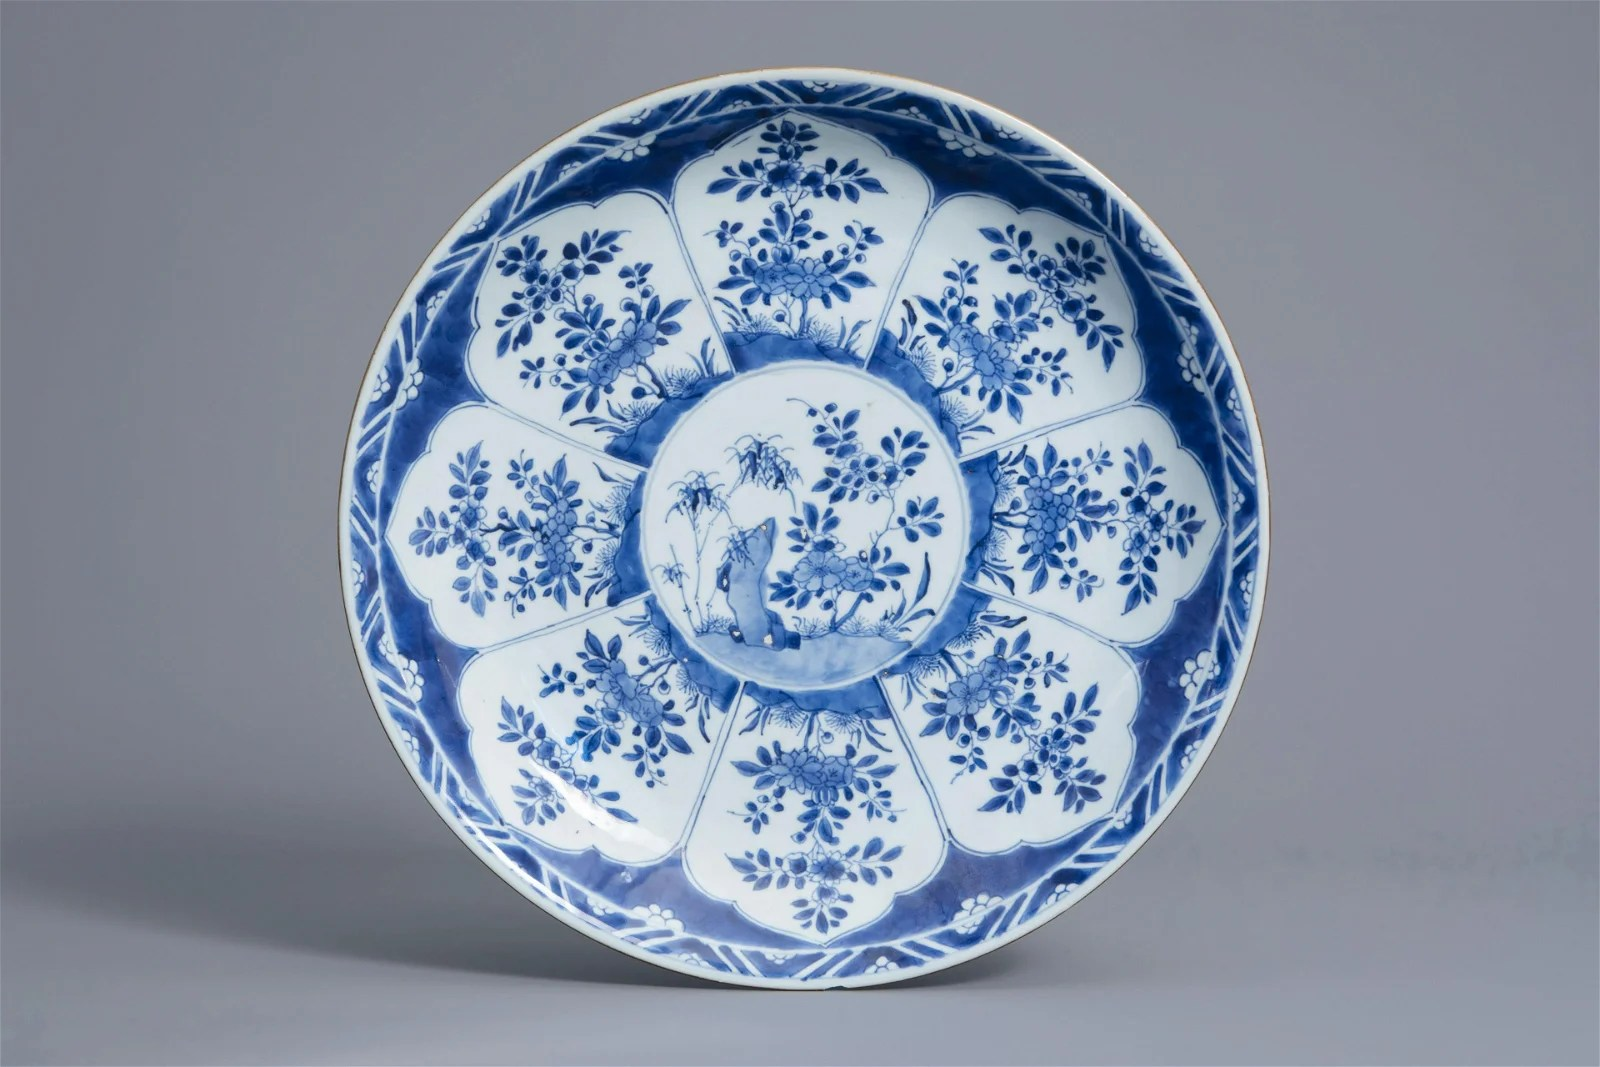 A Chinese blue and white charger with floral design,